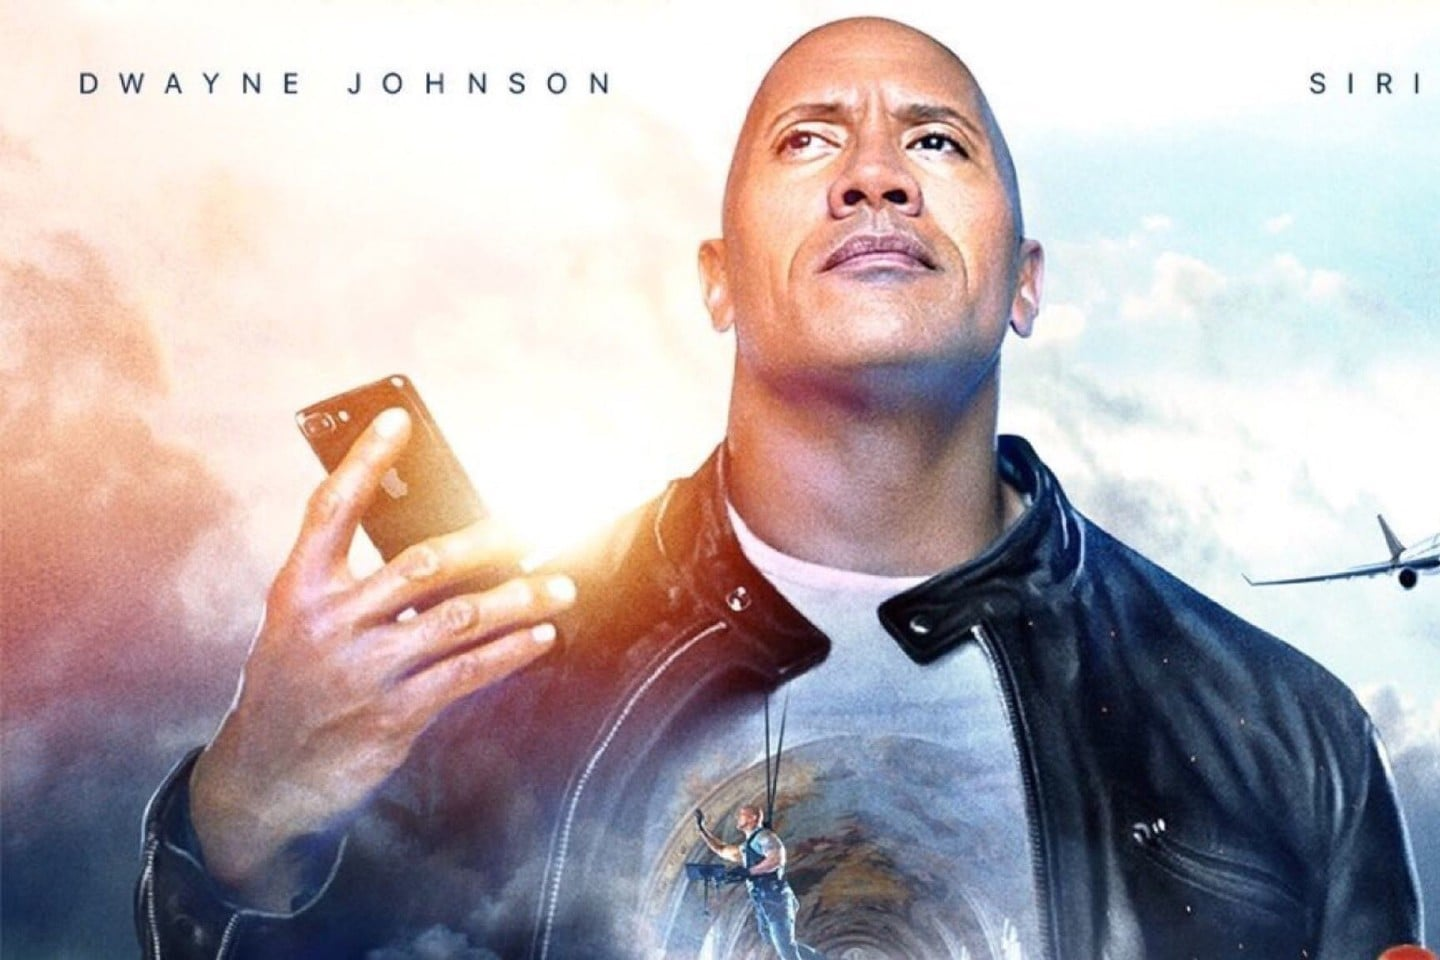 The Rock and Apple announce a movie co